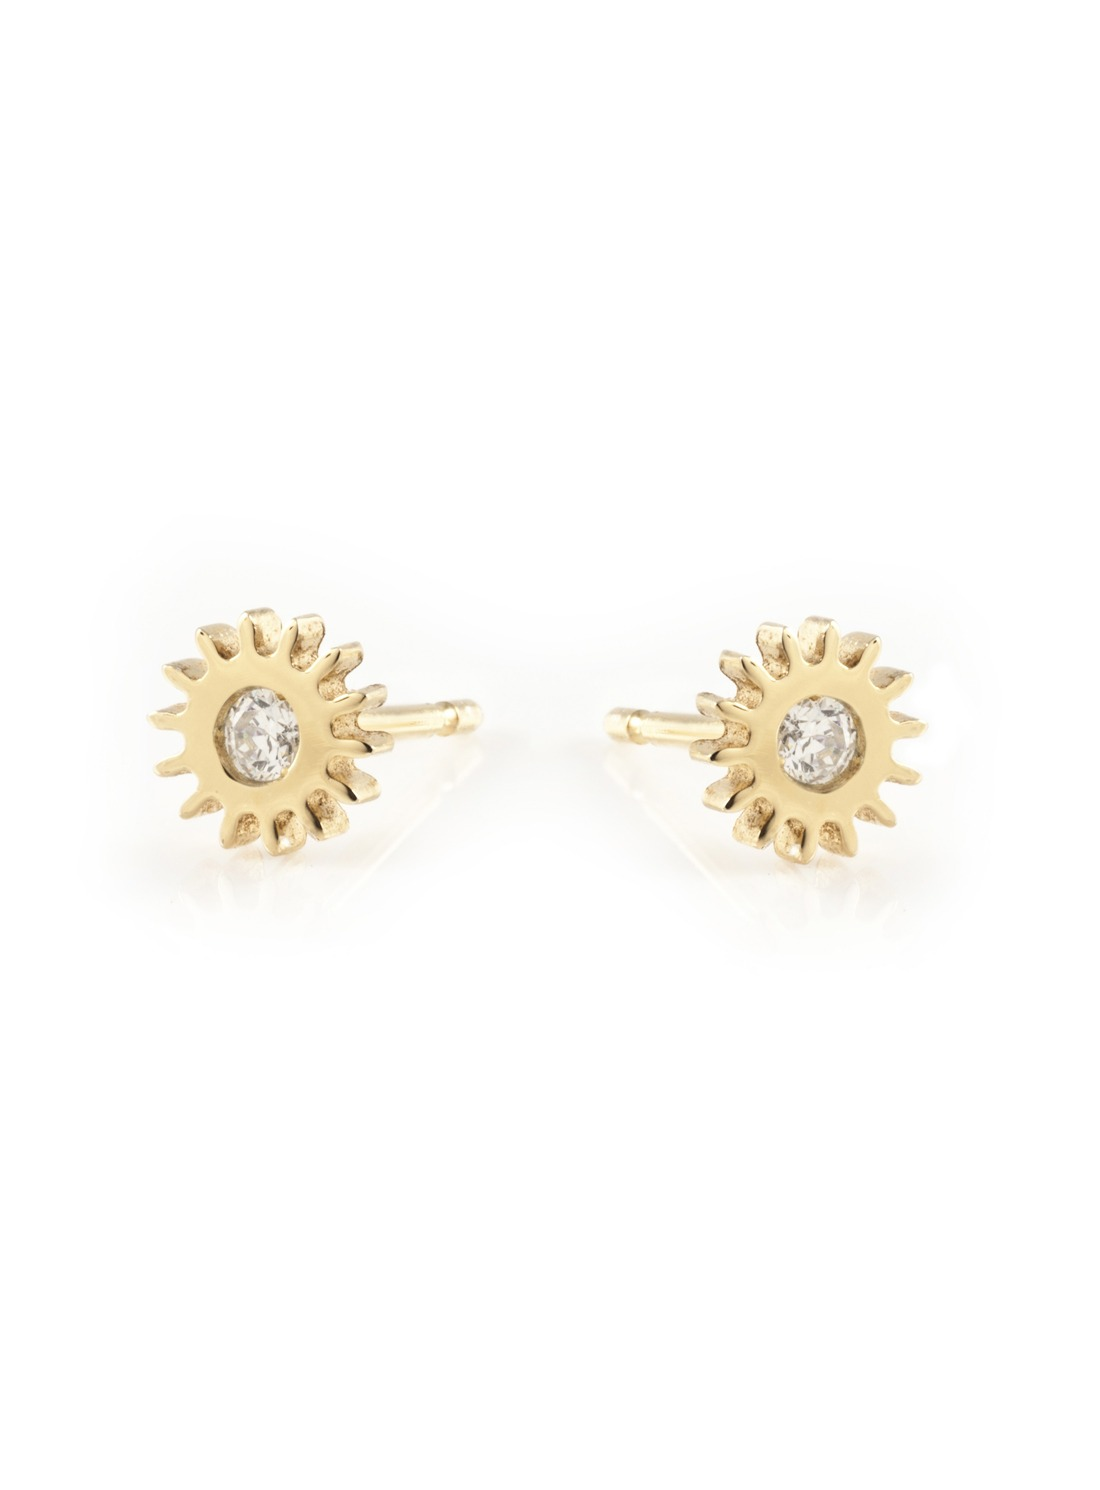 Lyst - Clarice Price Thomas Gold Small Cog Stud Earrings with ...